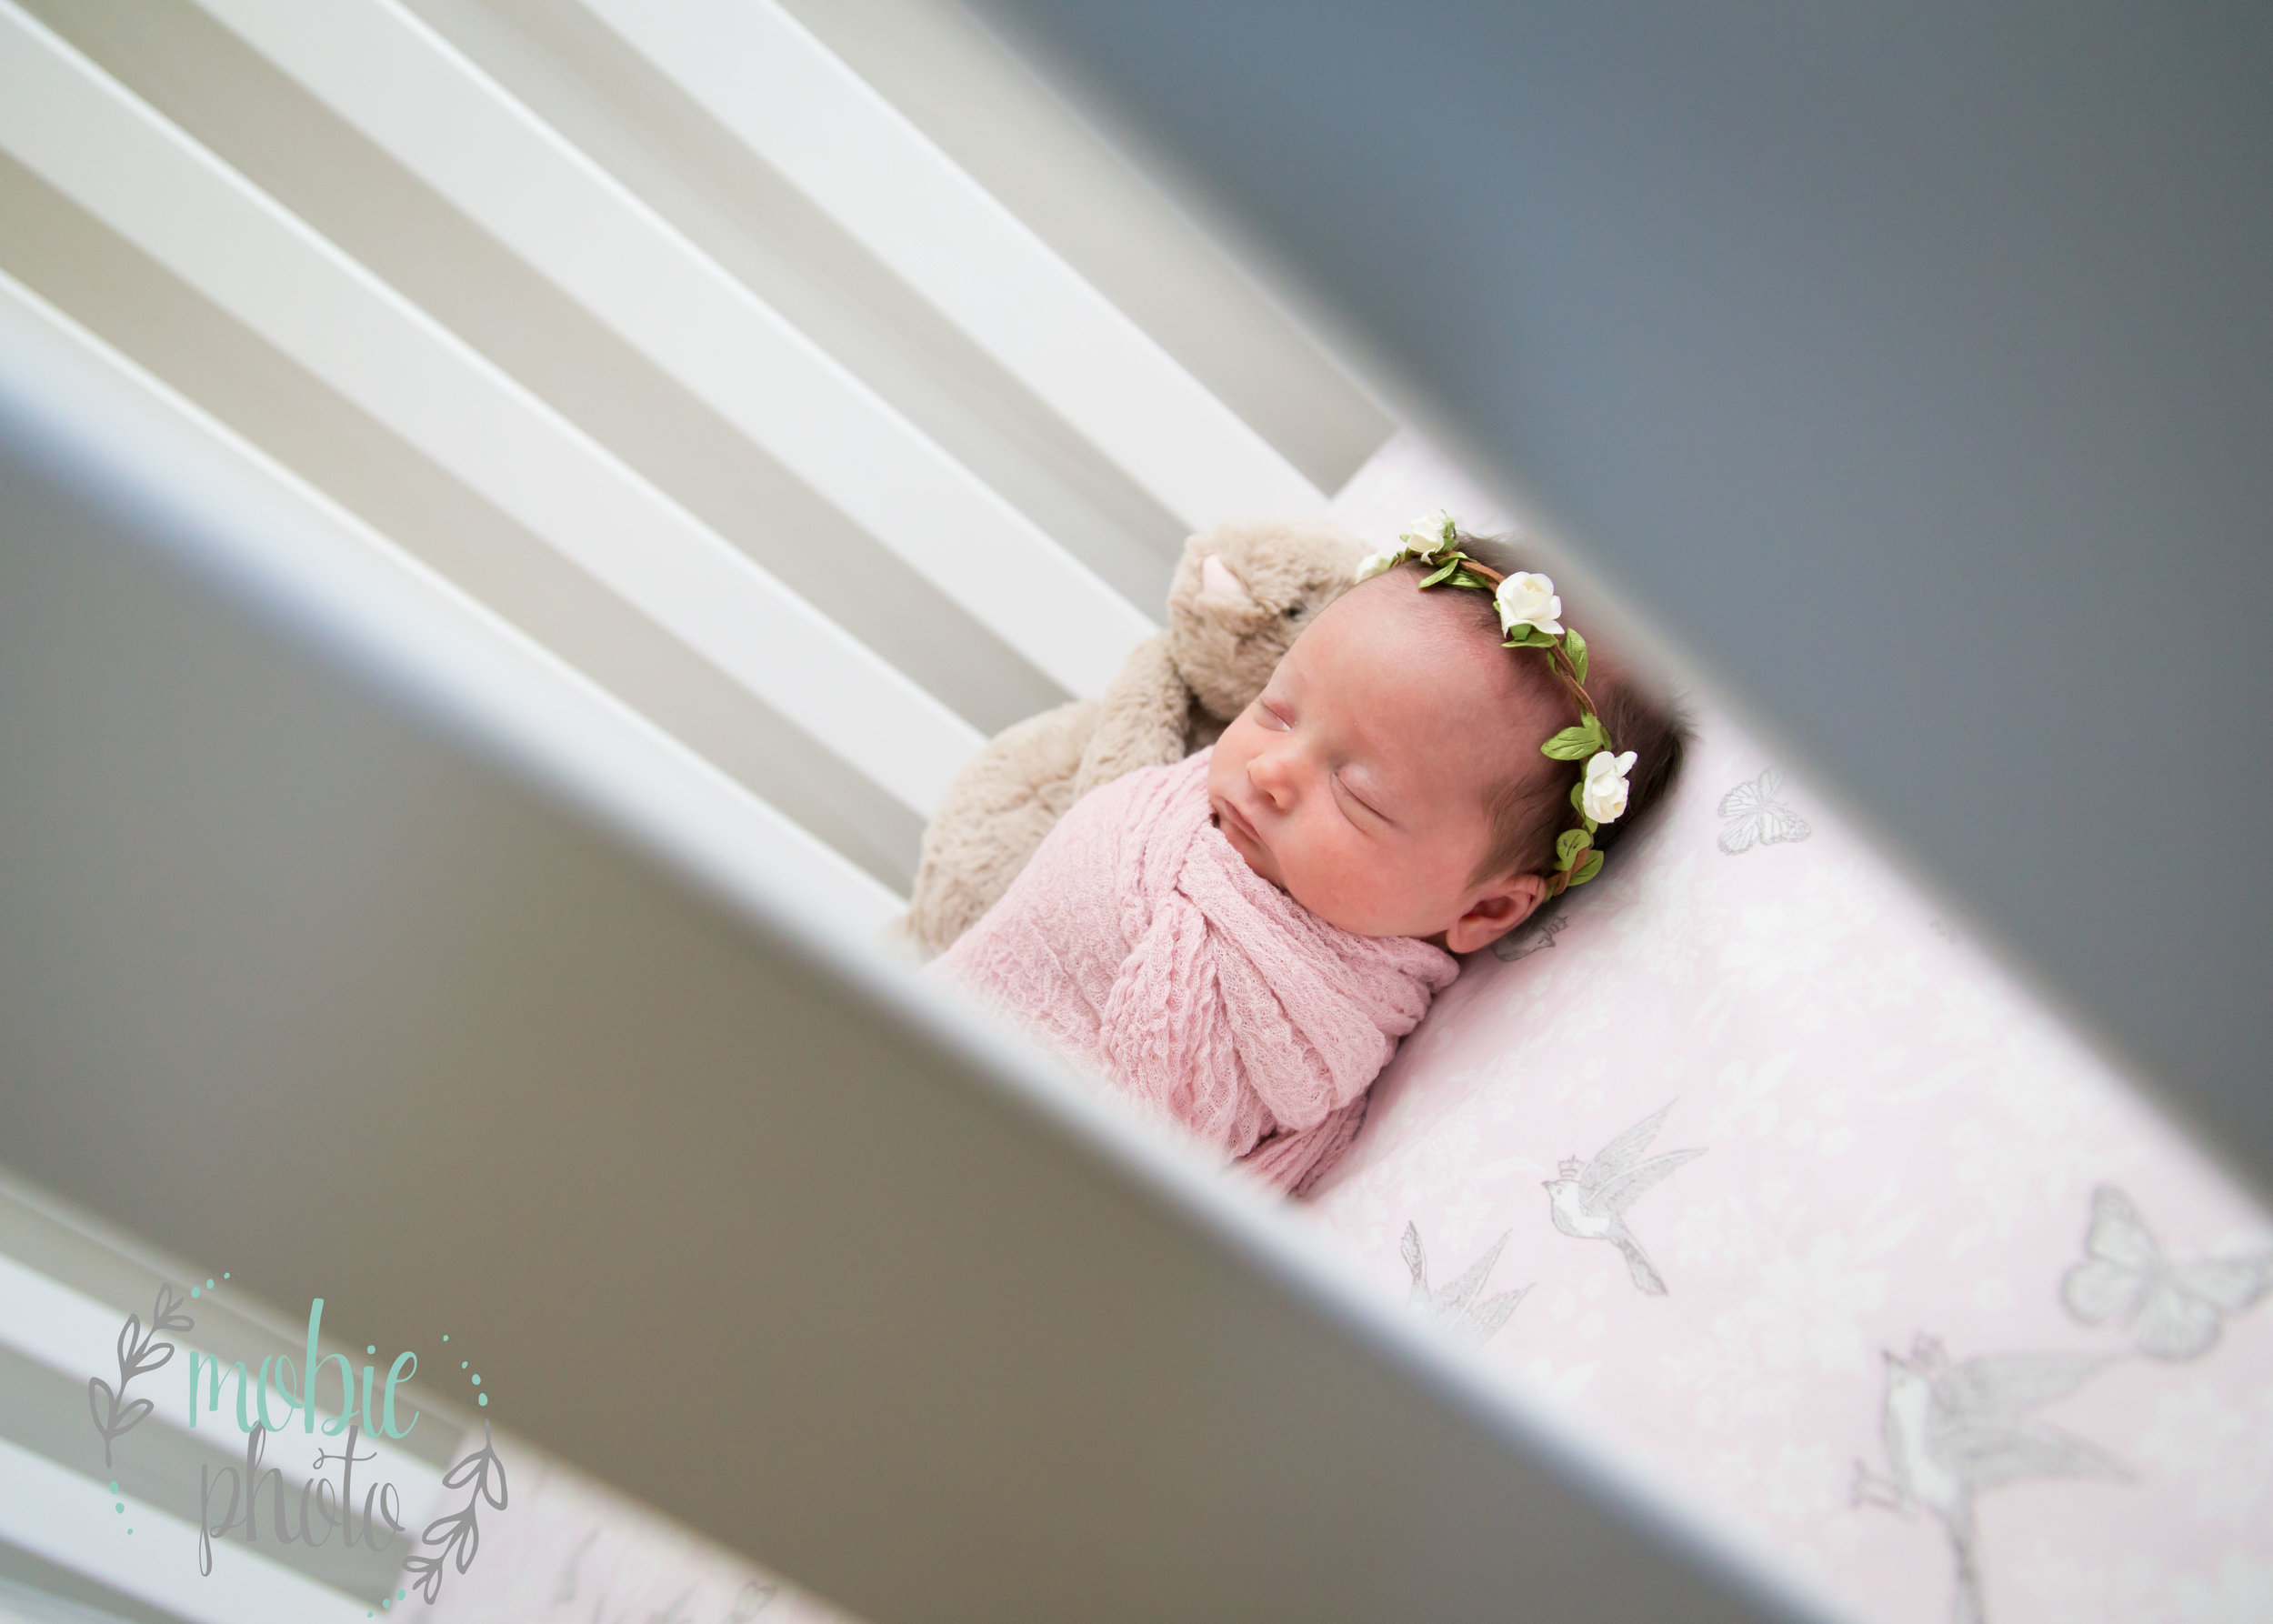 Newborn Girl Asleep in Crib with Stuffed Bunny, Pink Wrap, and Flower Headband